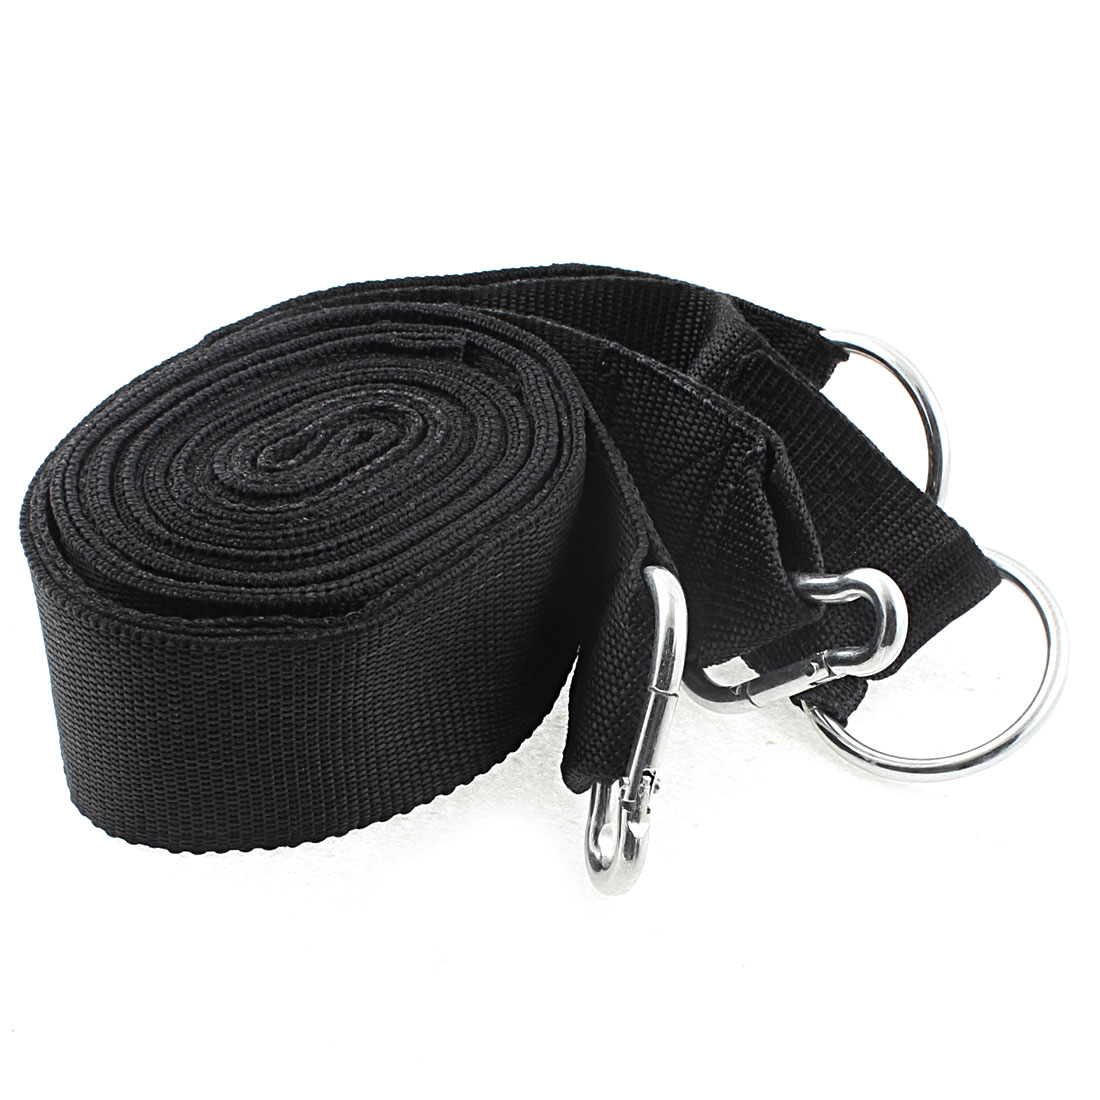 2pcs 10ft 3 Meters Long Carabiner Hook Clip Ring Black Nylon Hanging Hammock Strap Safety Belt Band